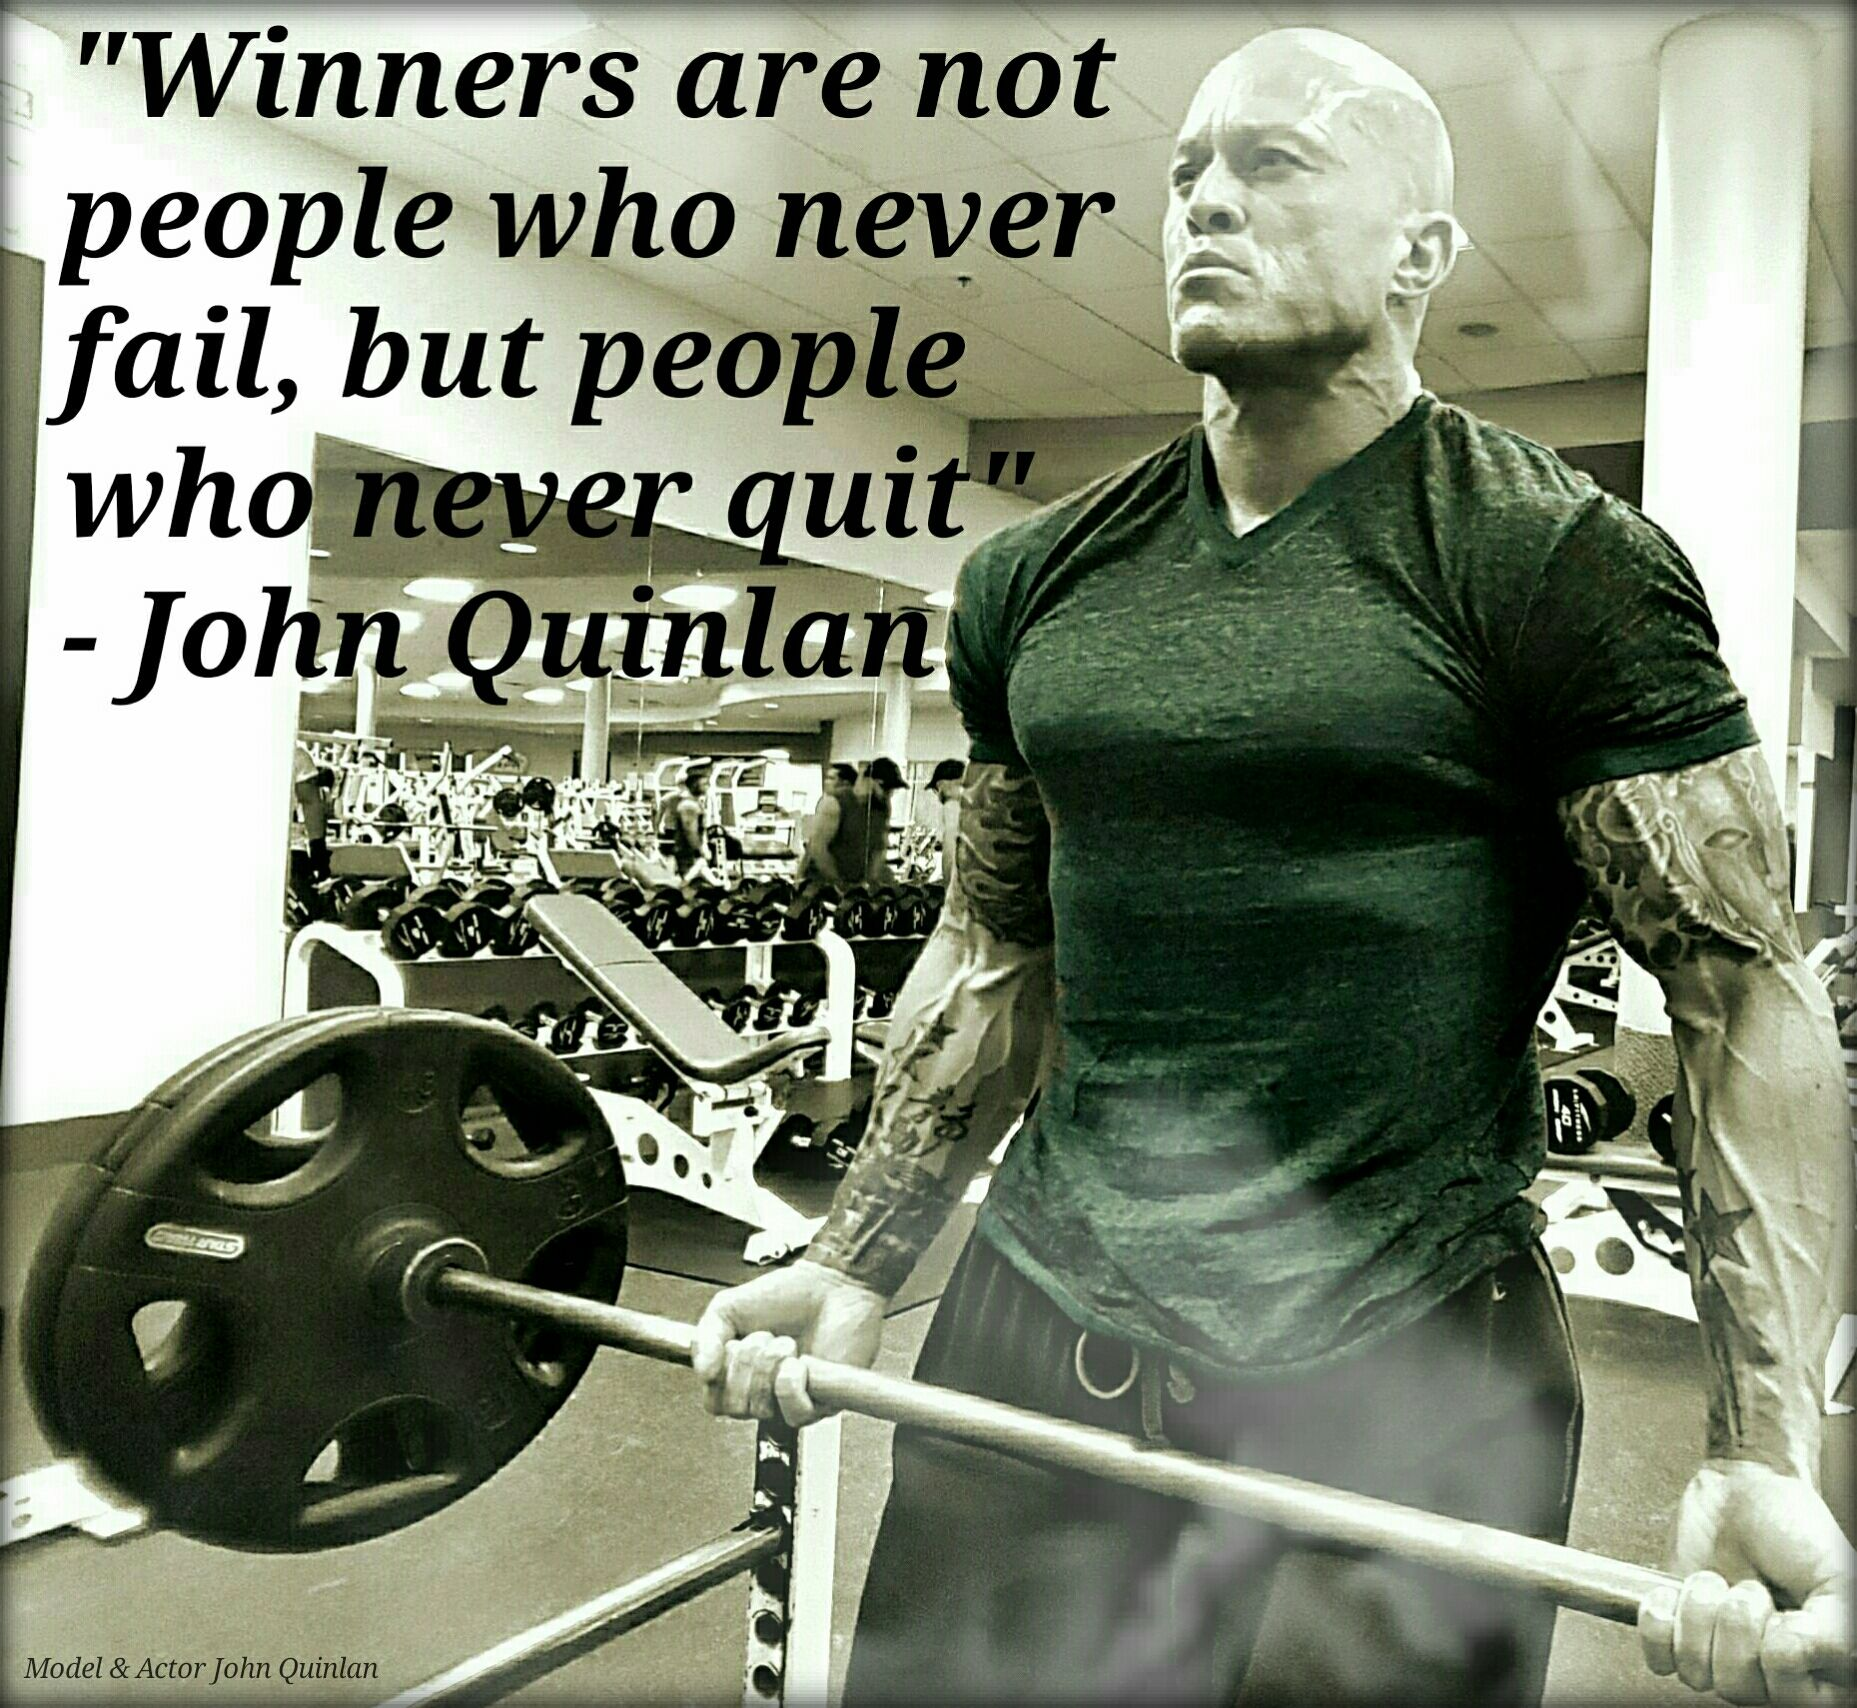 Physique Fitness Cover Model & Actor John Joseph Quinlan Winners Don't Quit #JohnQuinlan